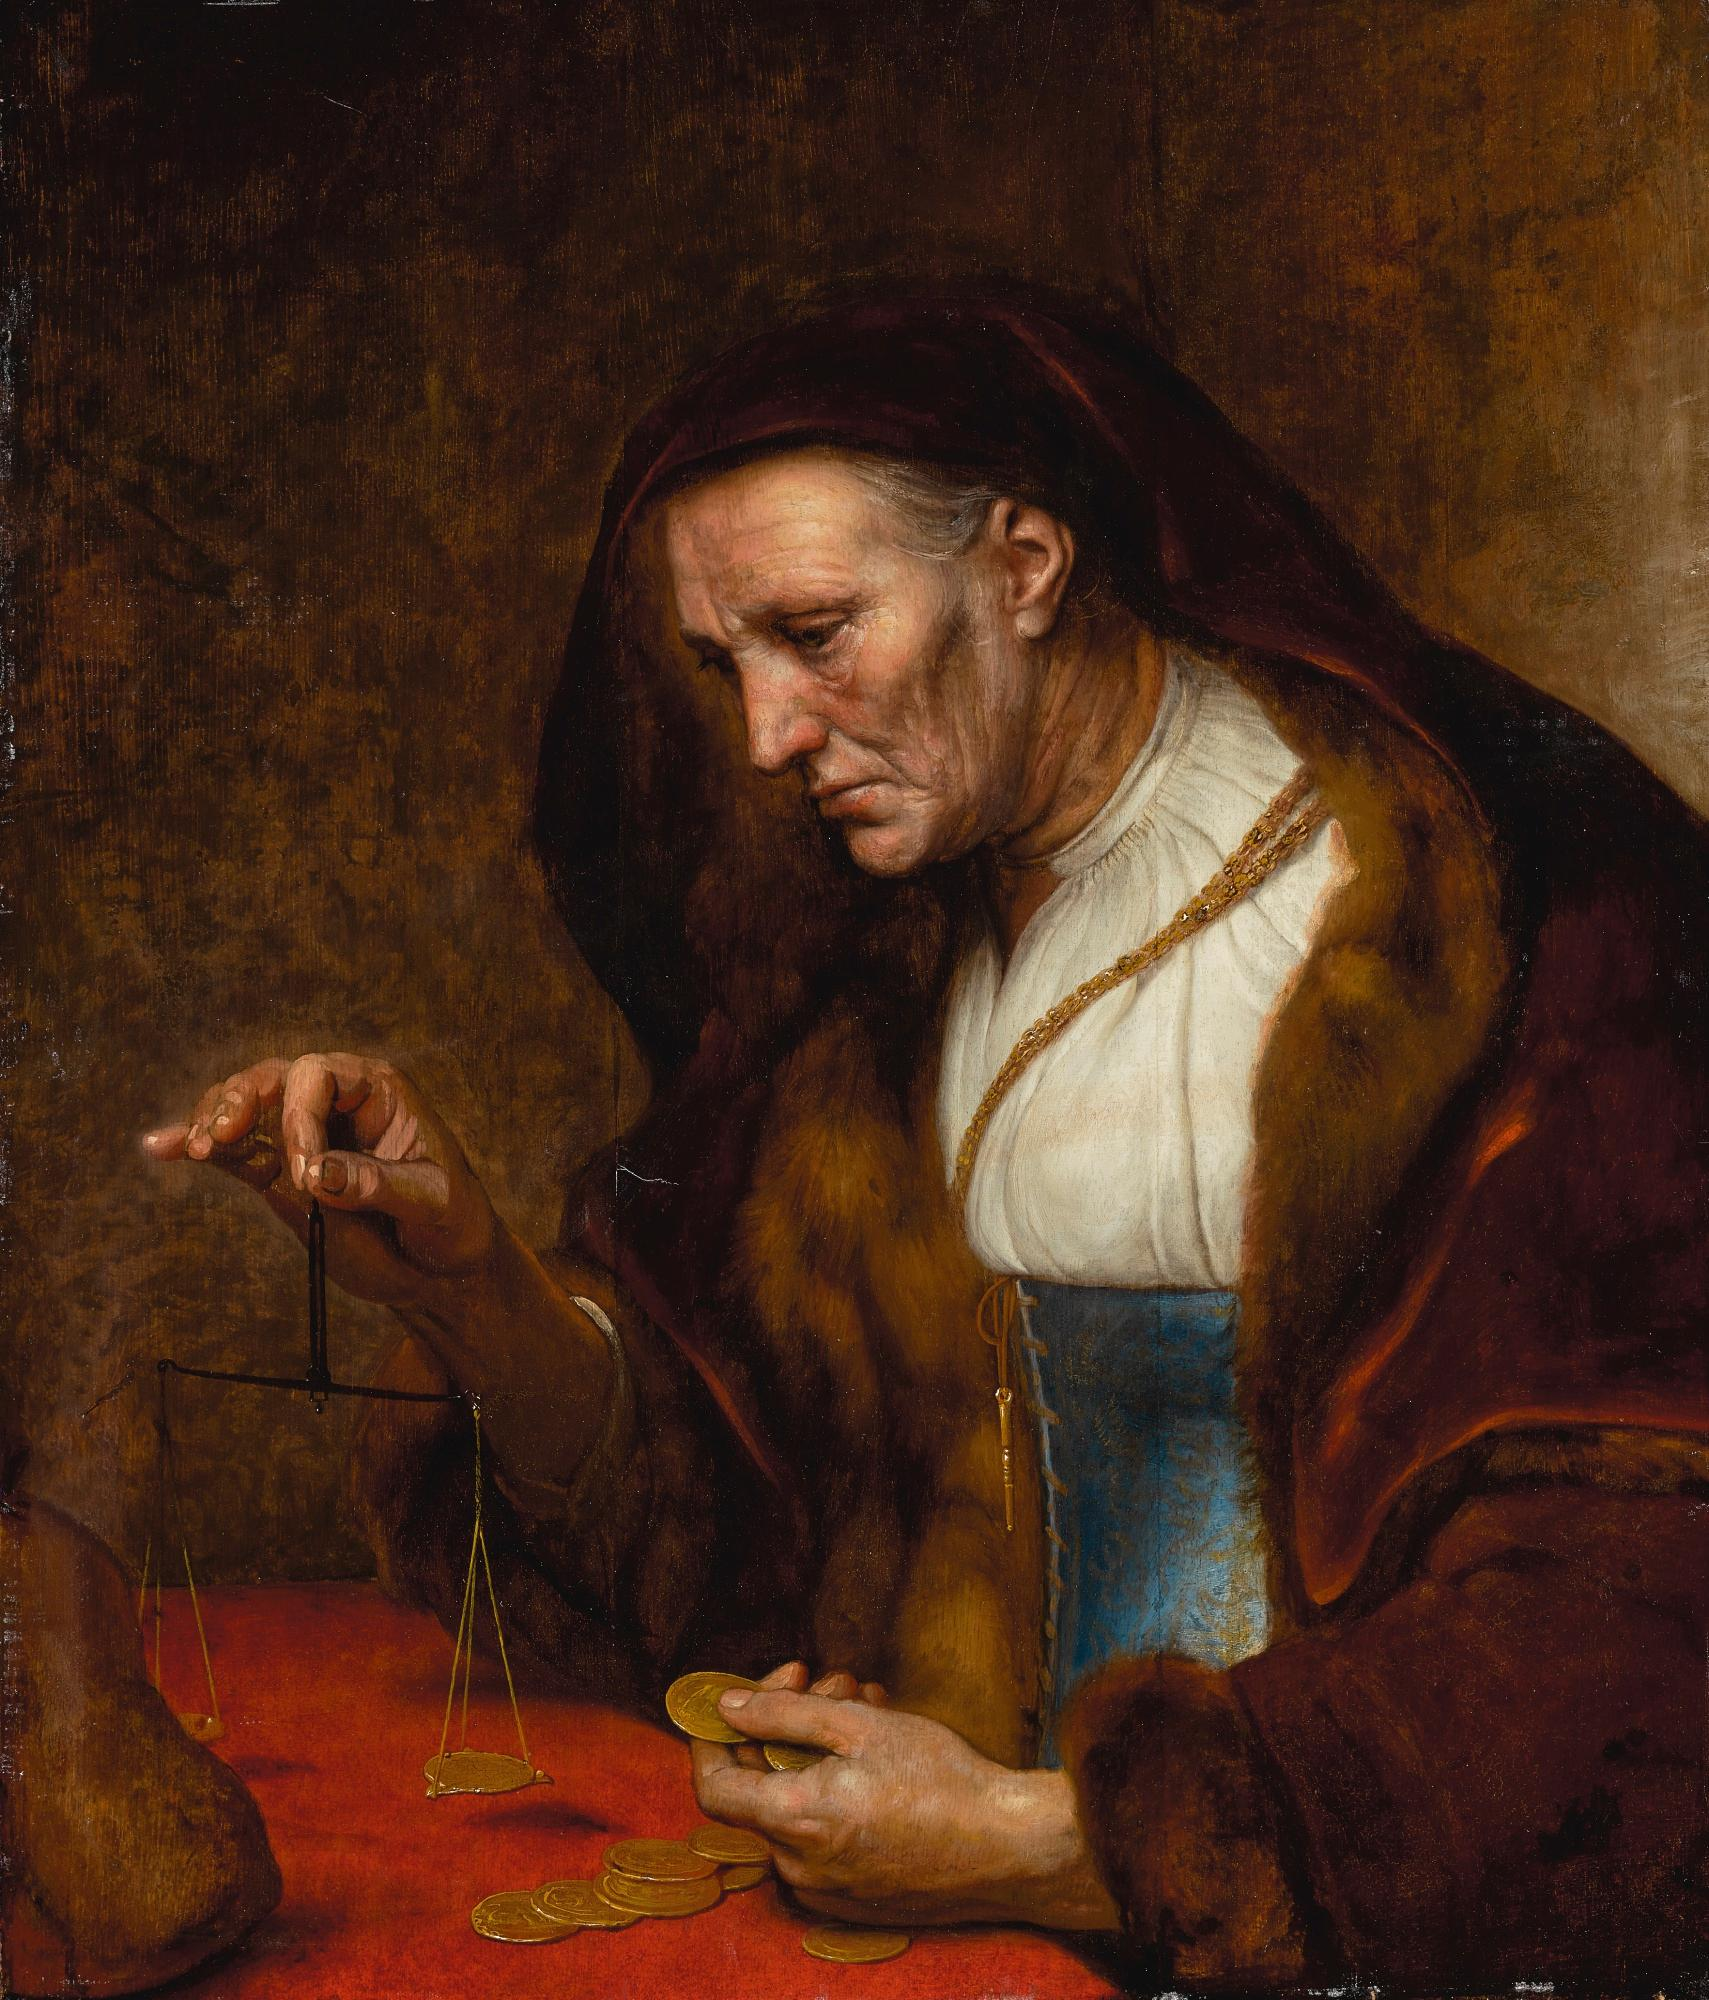 An Old Woman Weighing Gold Coins (Rembrandt School, 17th Century)